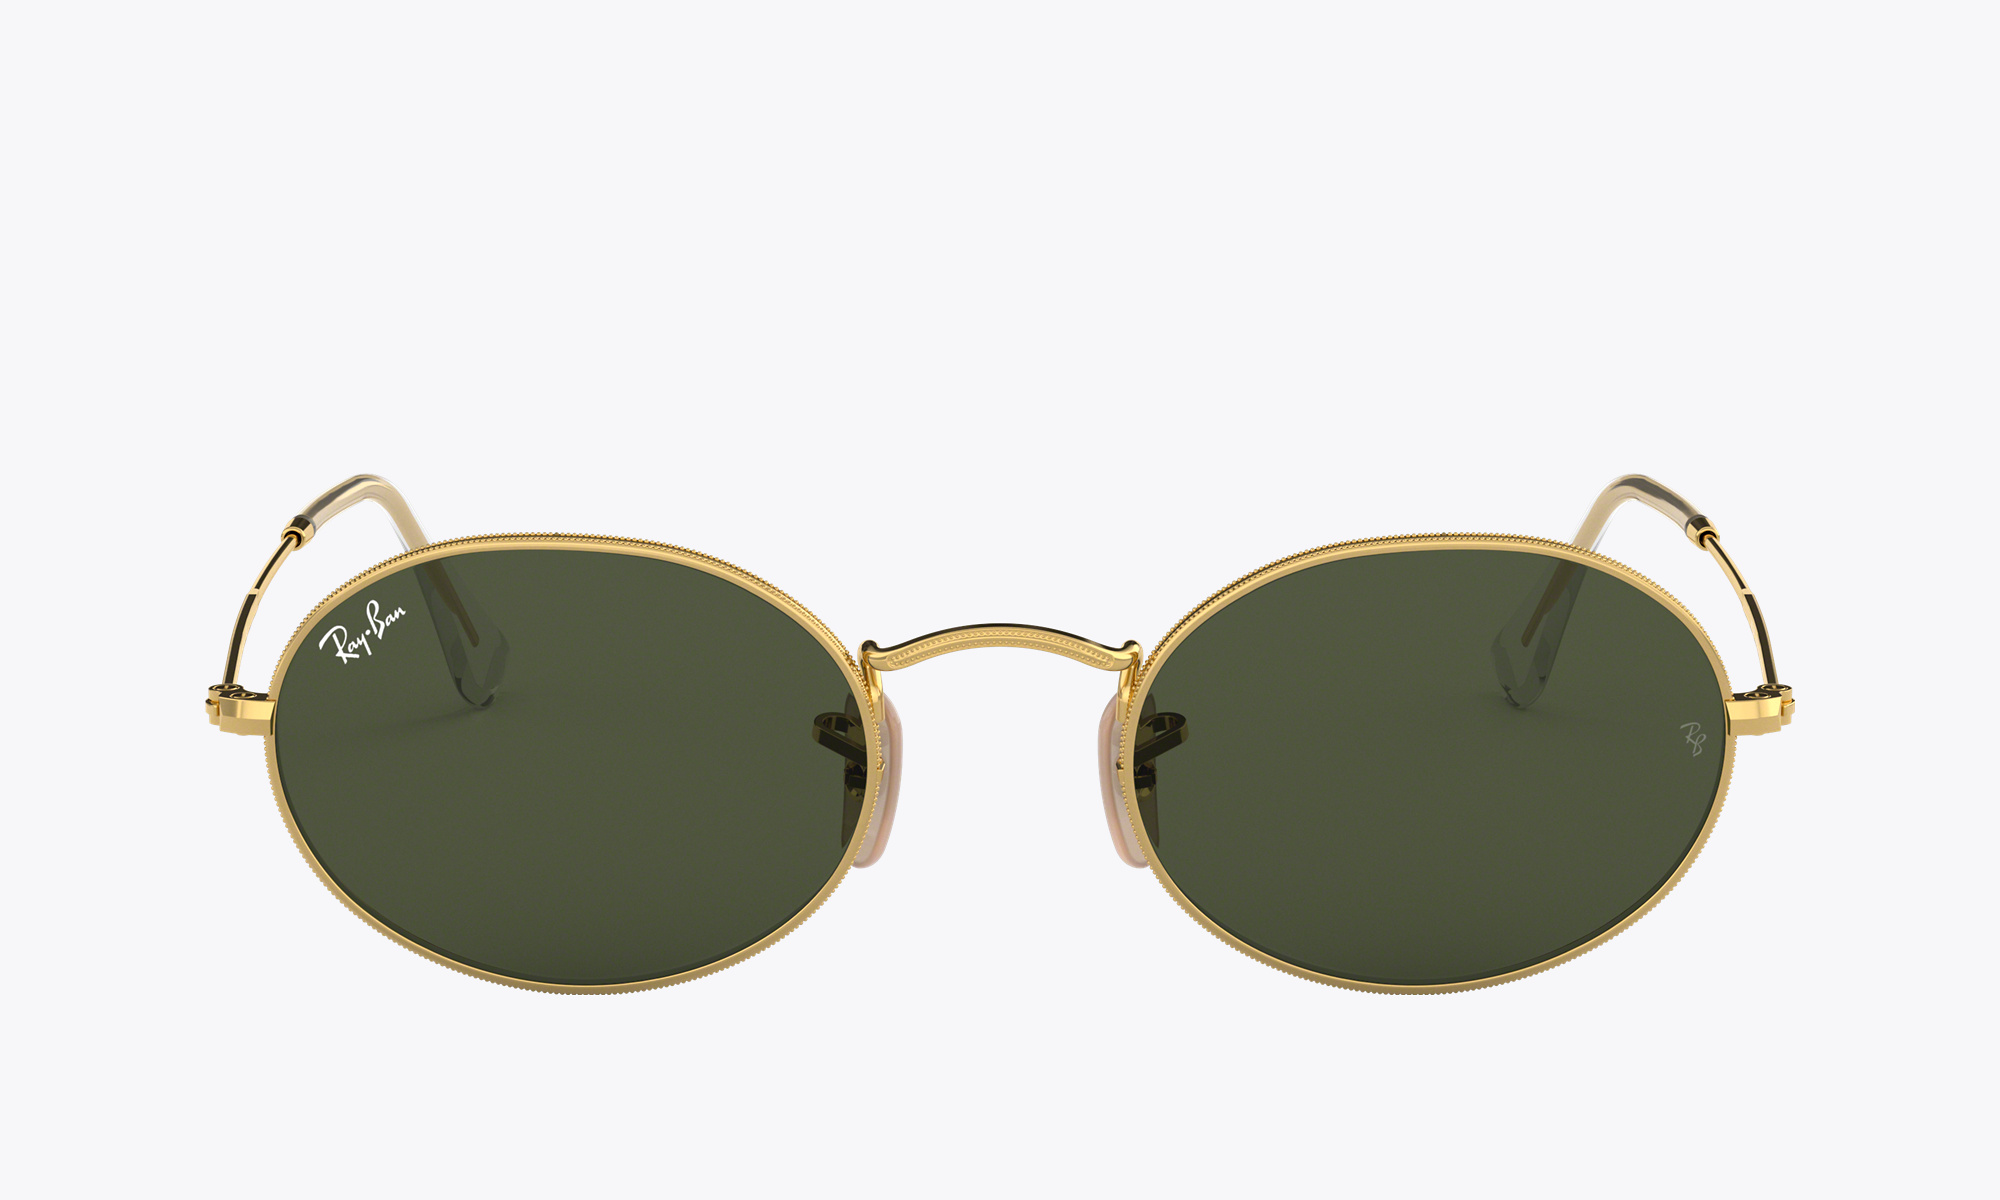 Image of Ray-Ban OVAL color Gold